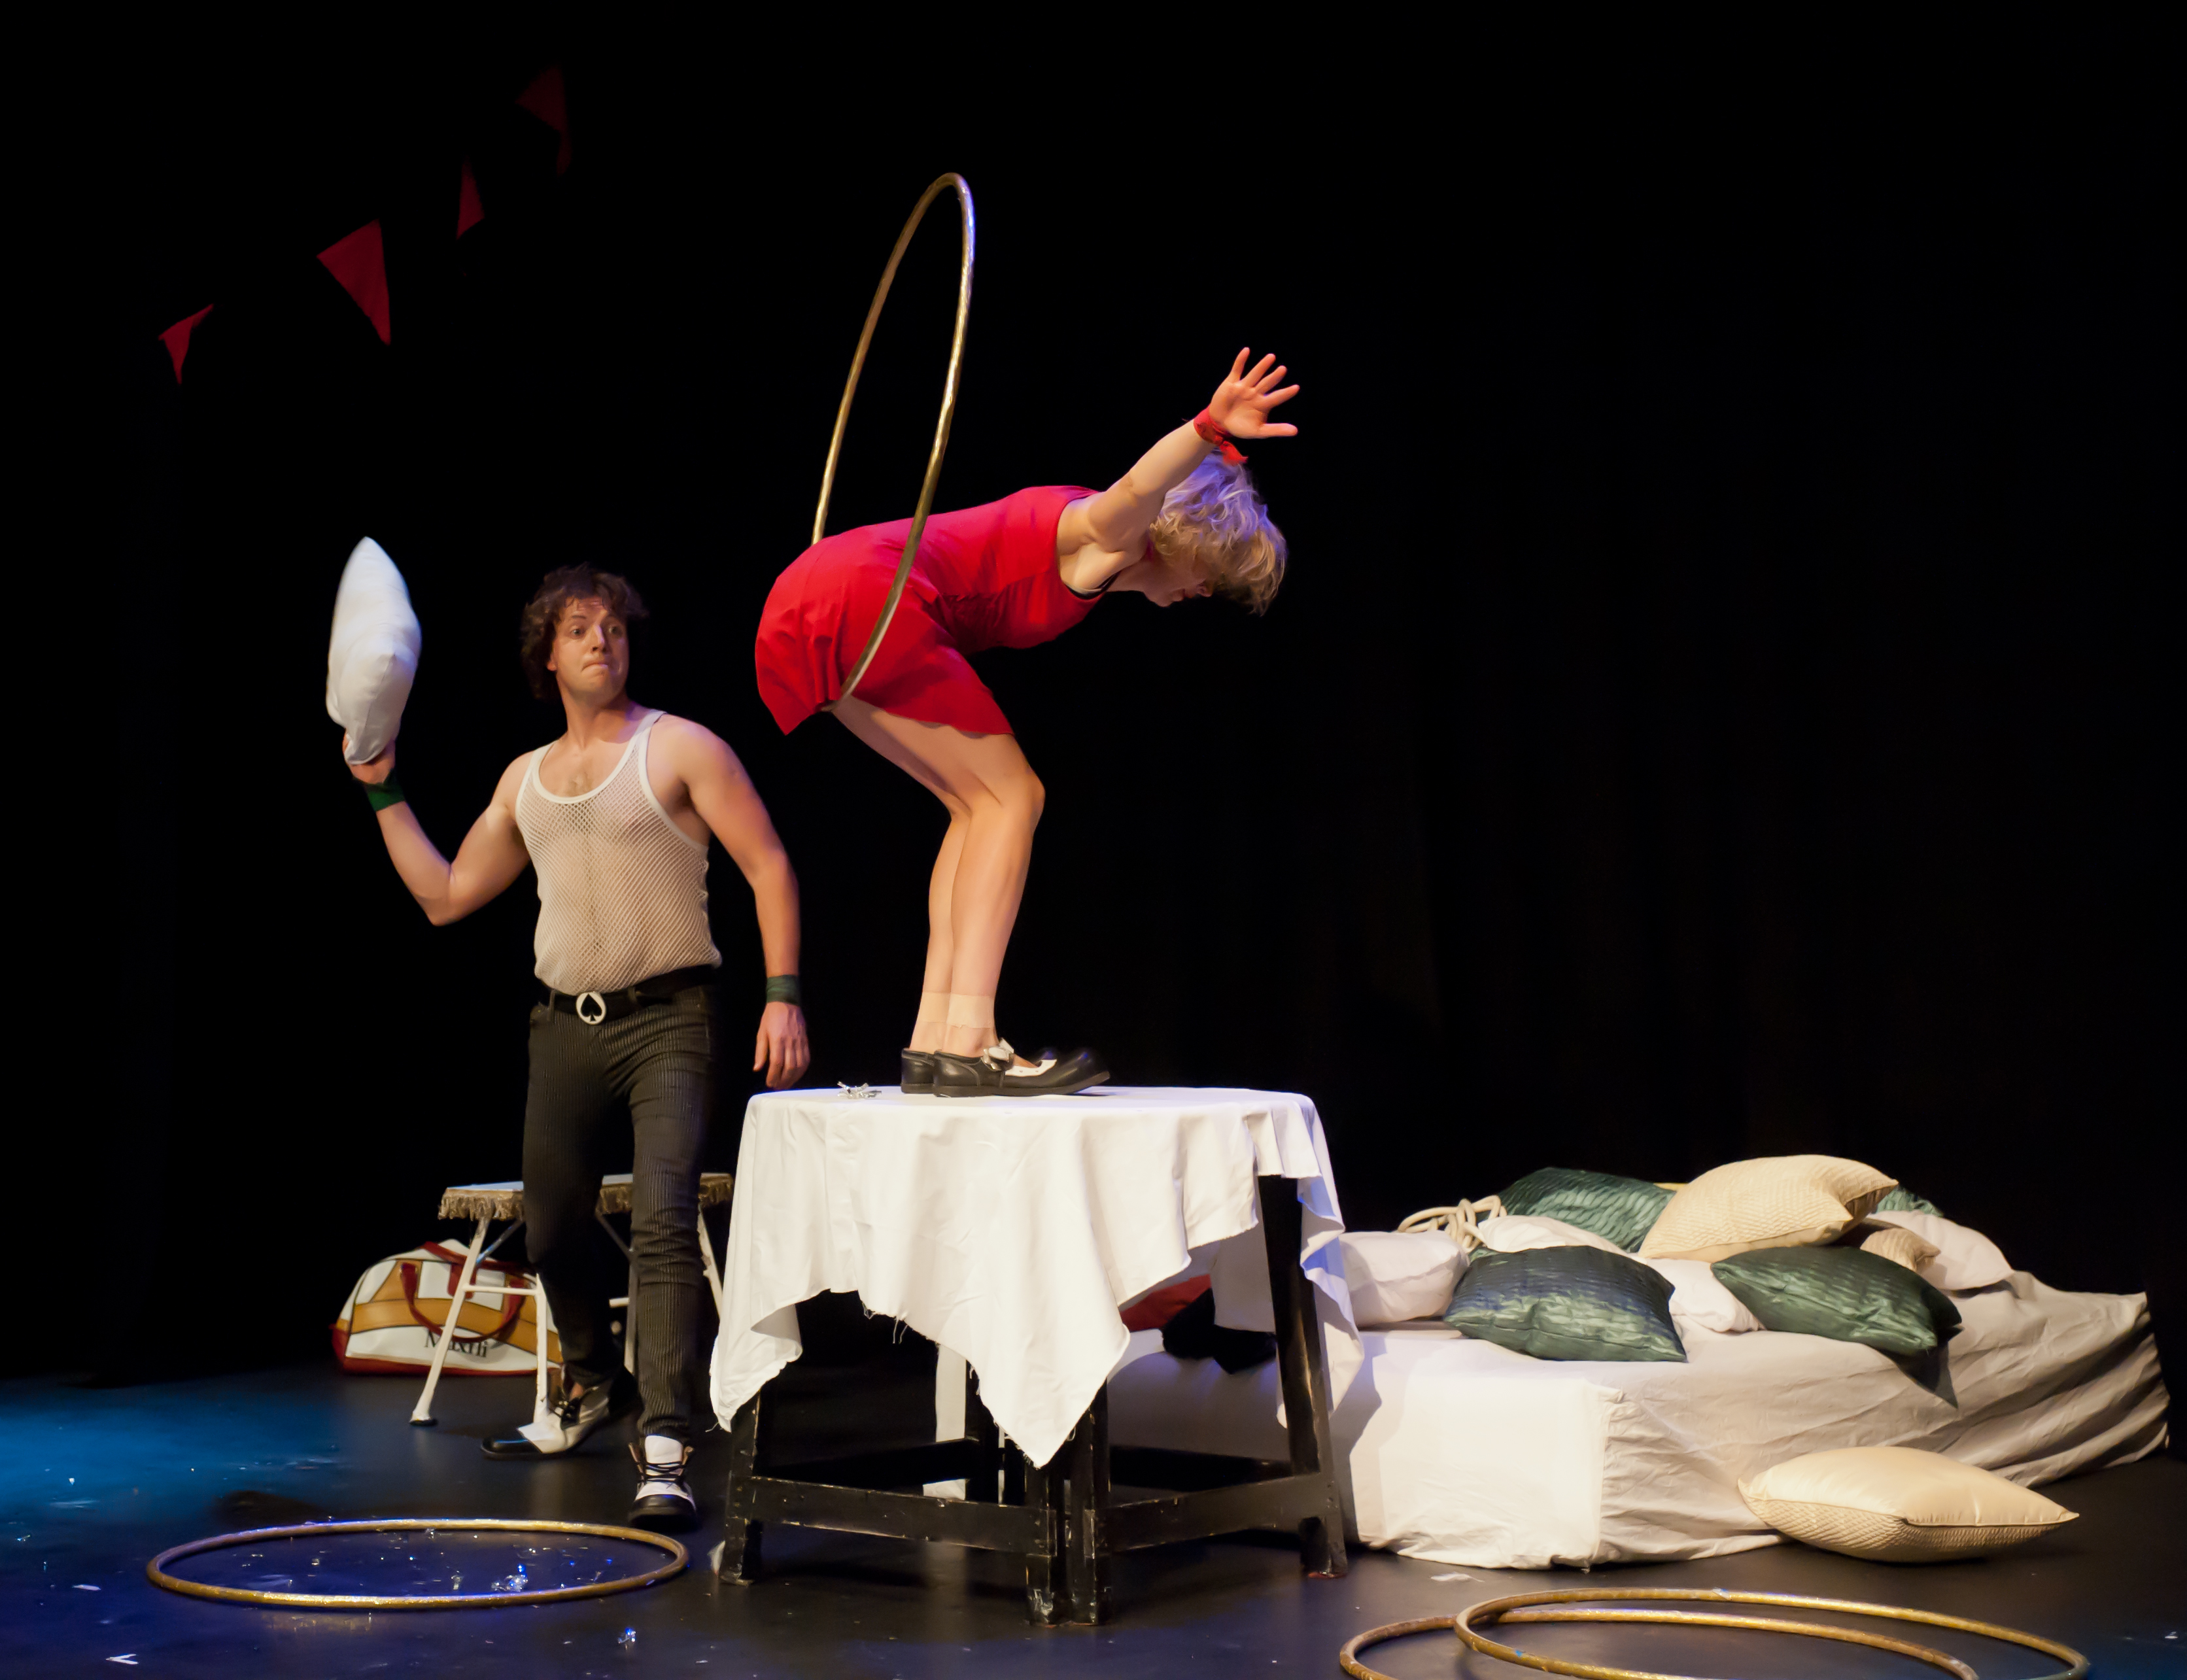 Tumble Circus: spot-on comic timing in a refreshing change from traditional circus shows